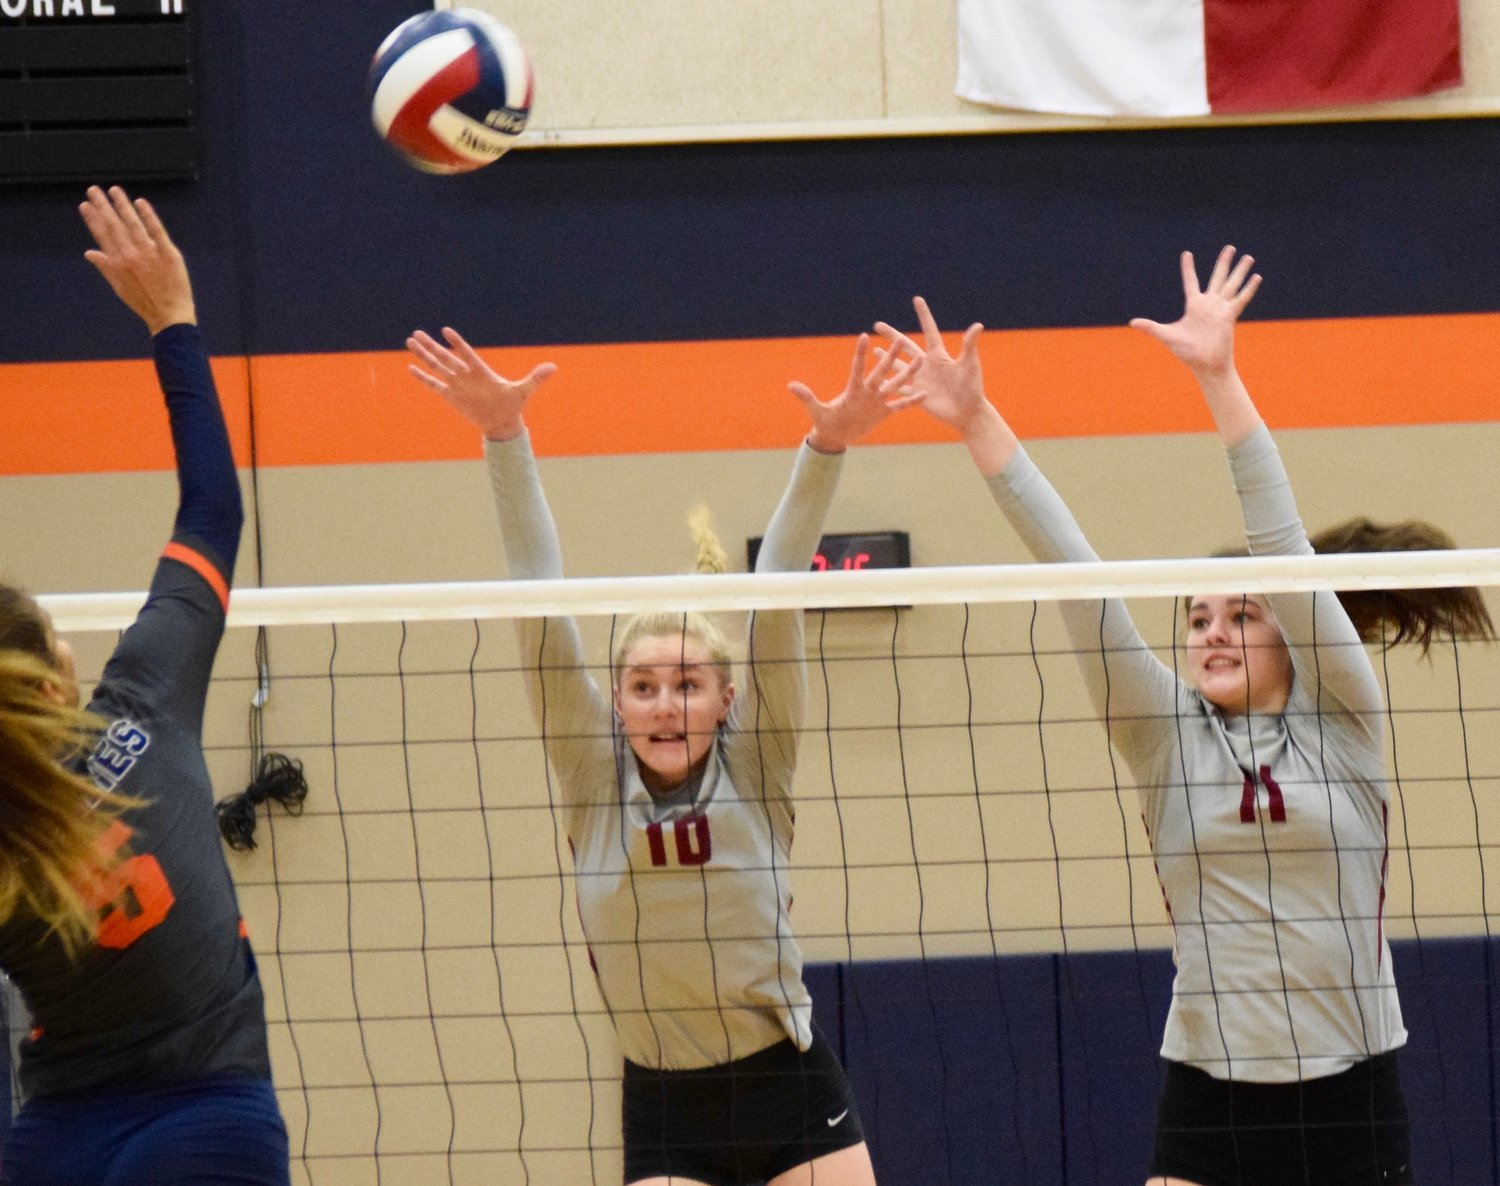 Kara Erfurth, left, MacKenzine Huntley and Rouse swept Glenn 3-0 (25-11, 25-10, 25-19) to stay undefeated in district play and push their winning streak to 10 games.